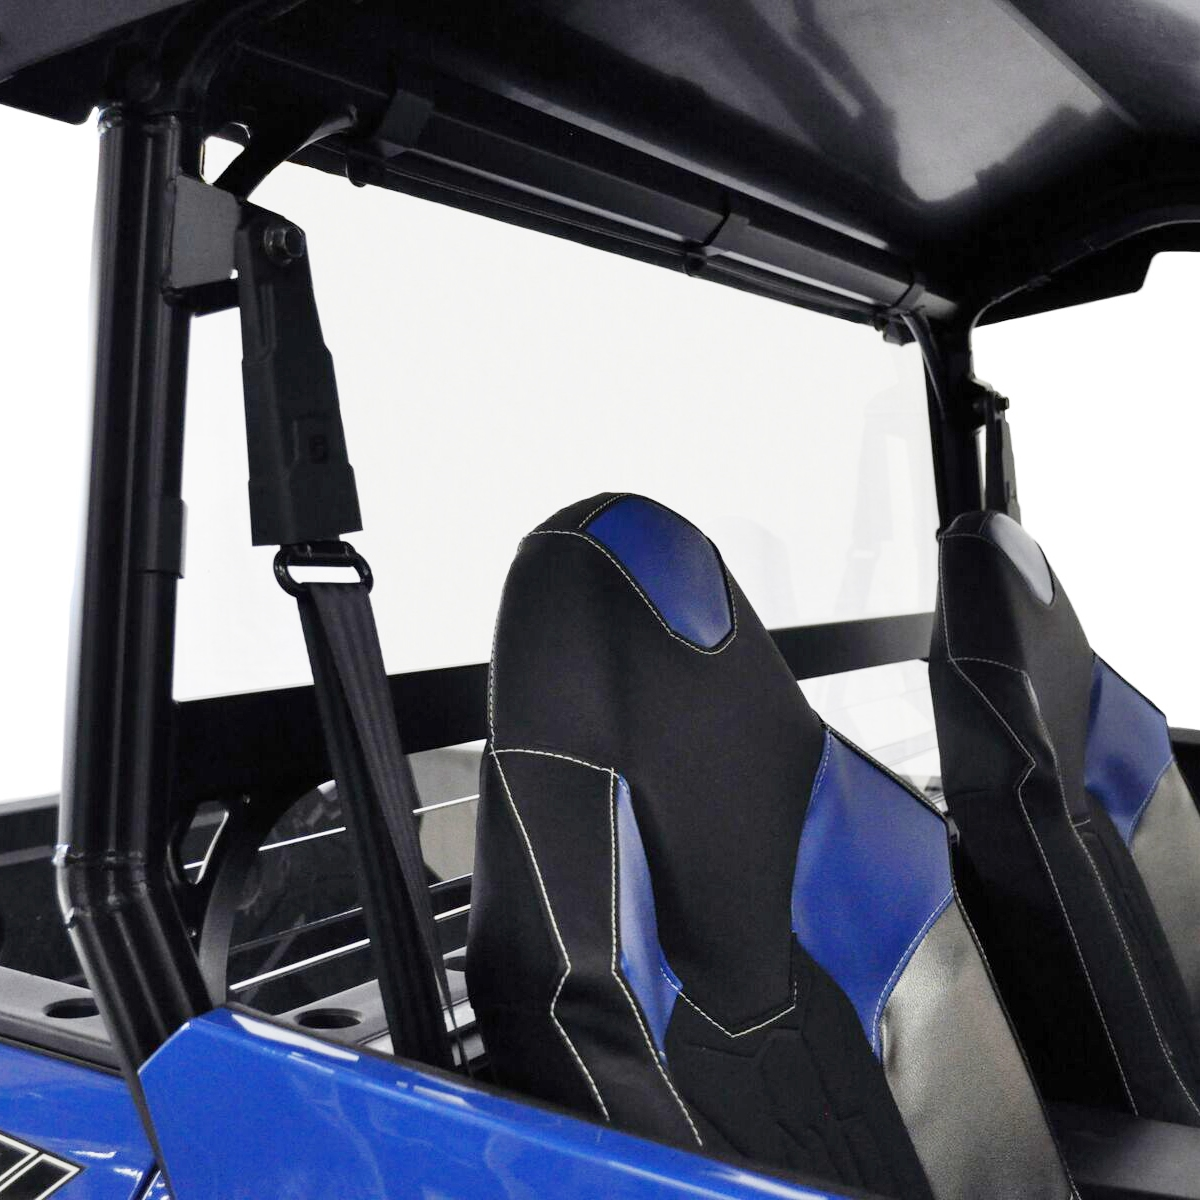 DIRECTION-2 Rear Windshield GP | Kimpex Canada